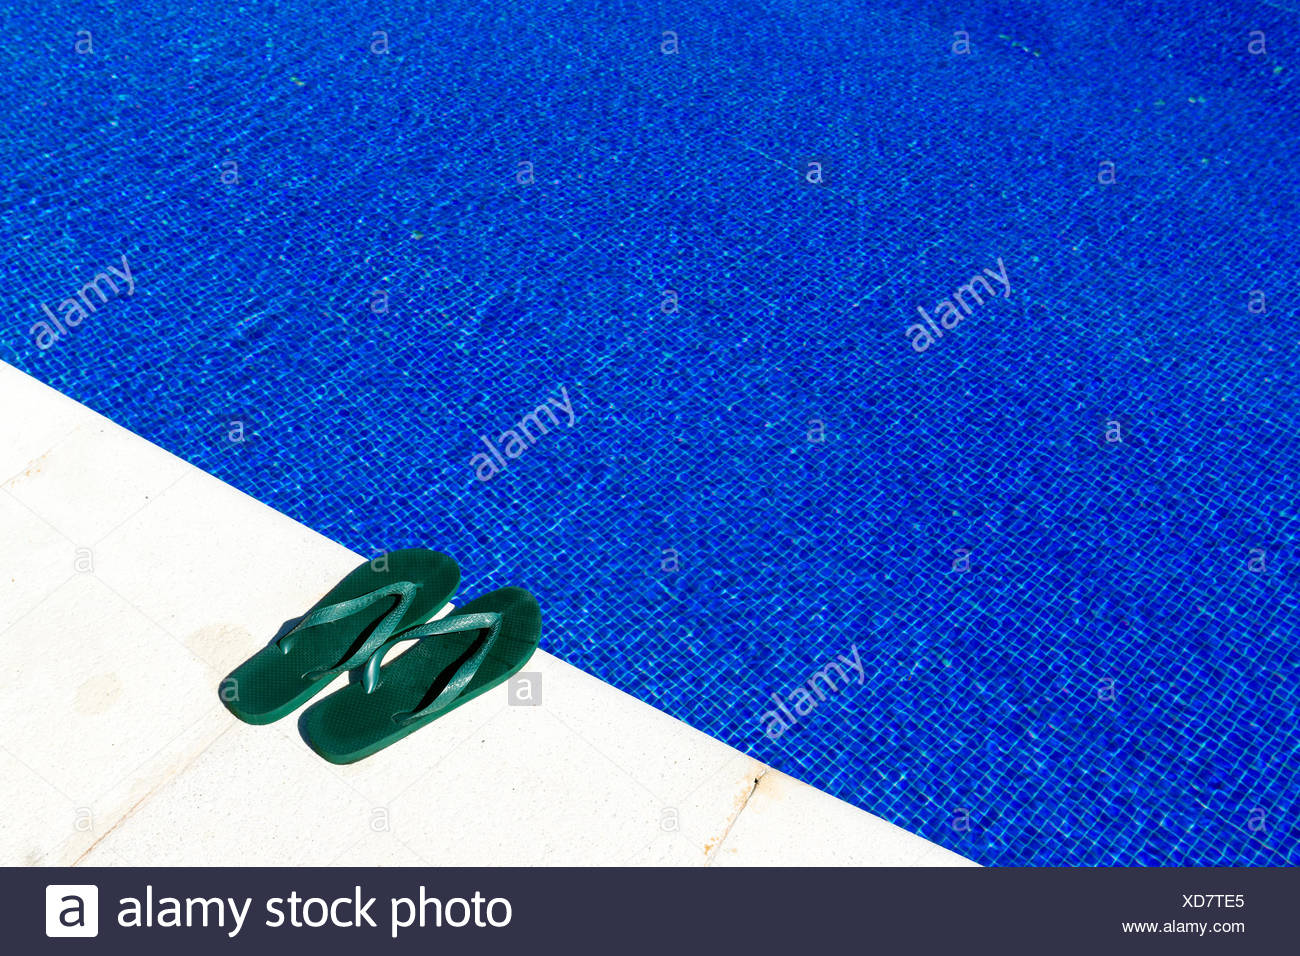 Swimming pool with flip-flops - Stock Image